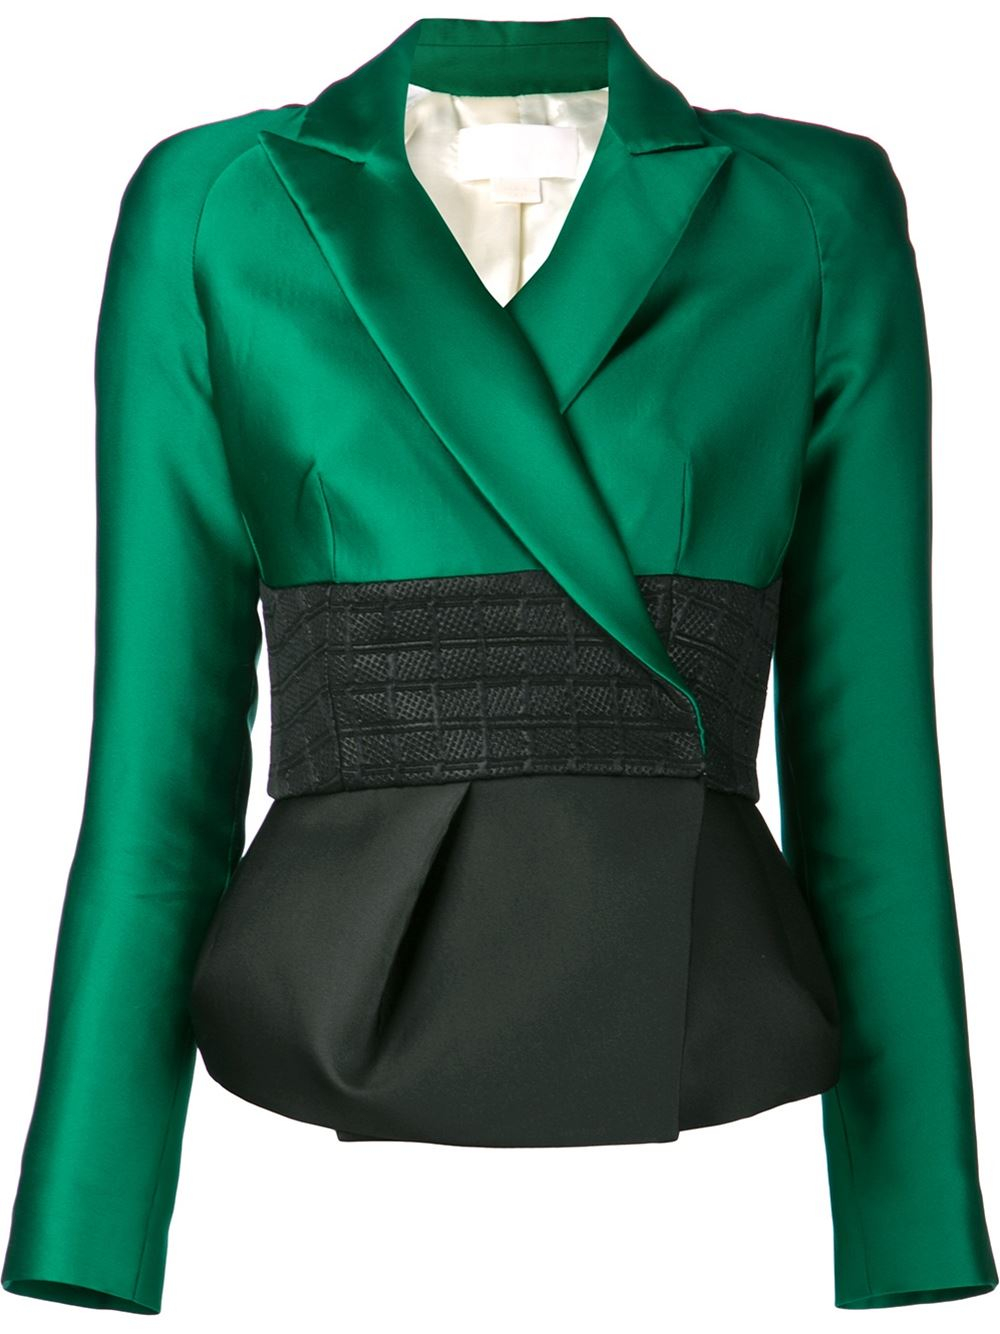 Antonio Berardi Ladies Jacket In Green Lyst